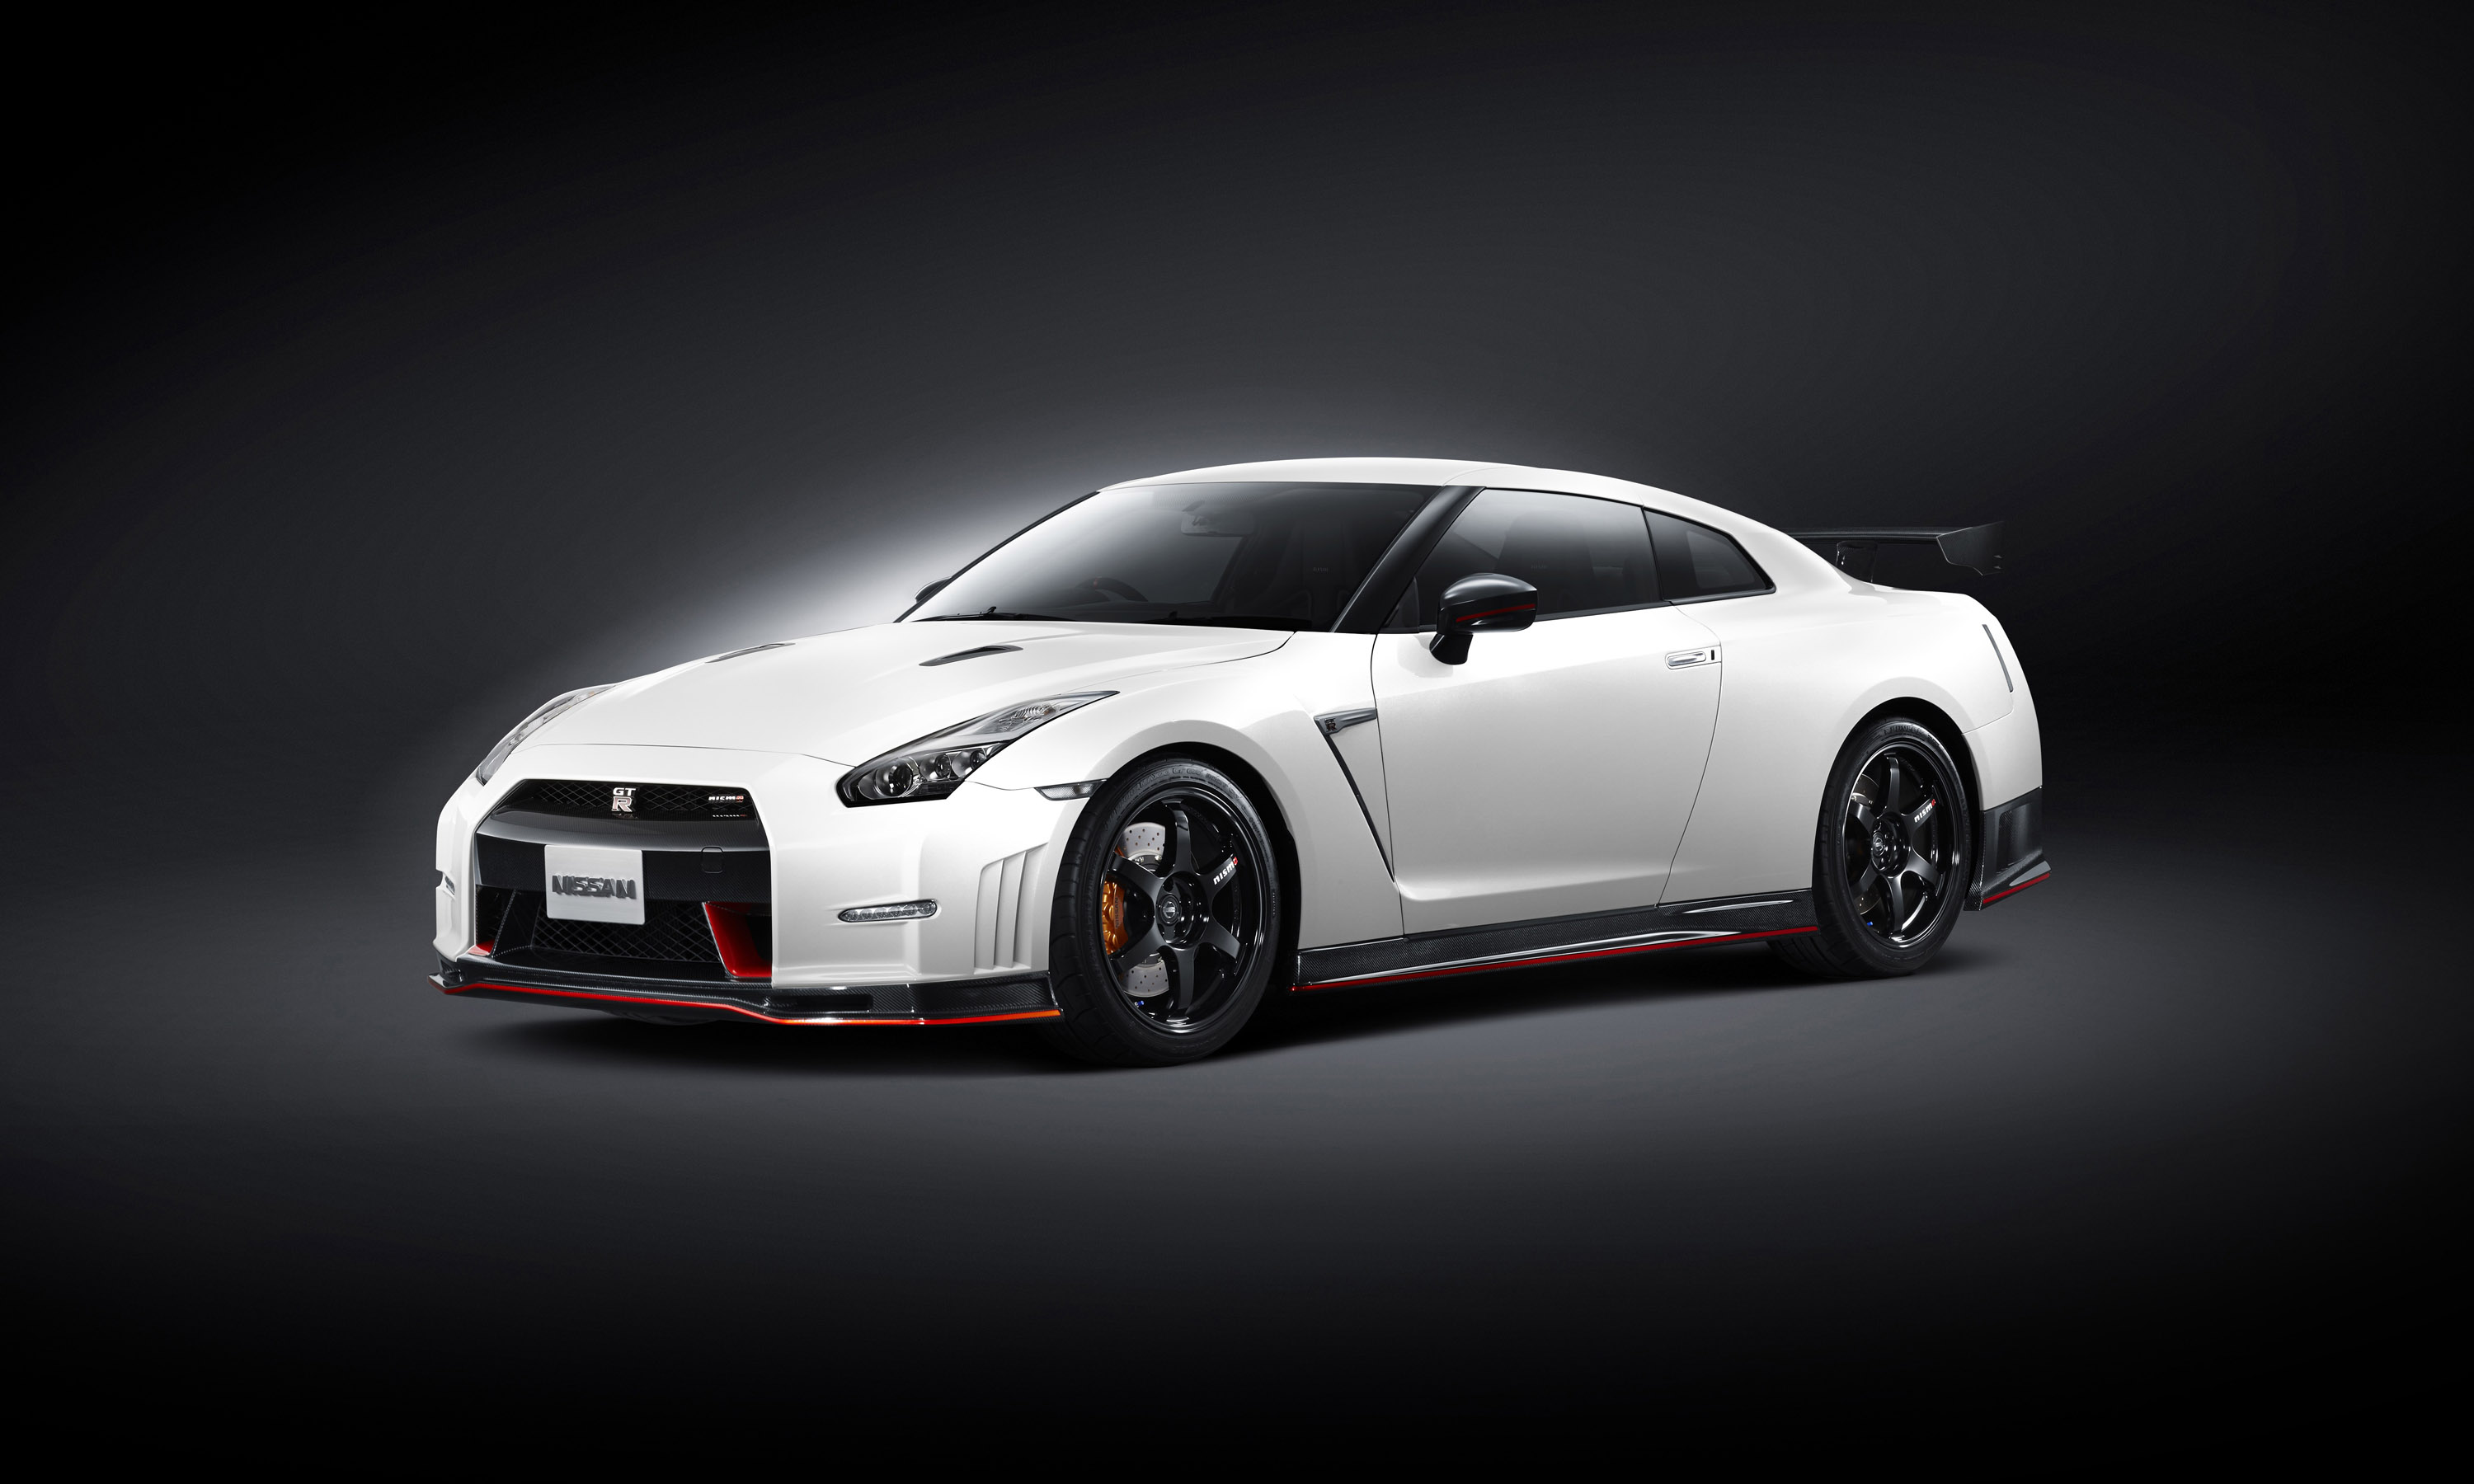 2014 Nissan Gt R Nismo Eu Spec Road And Track Test